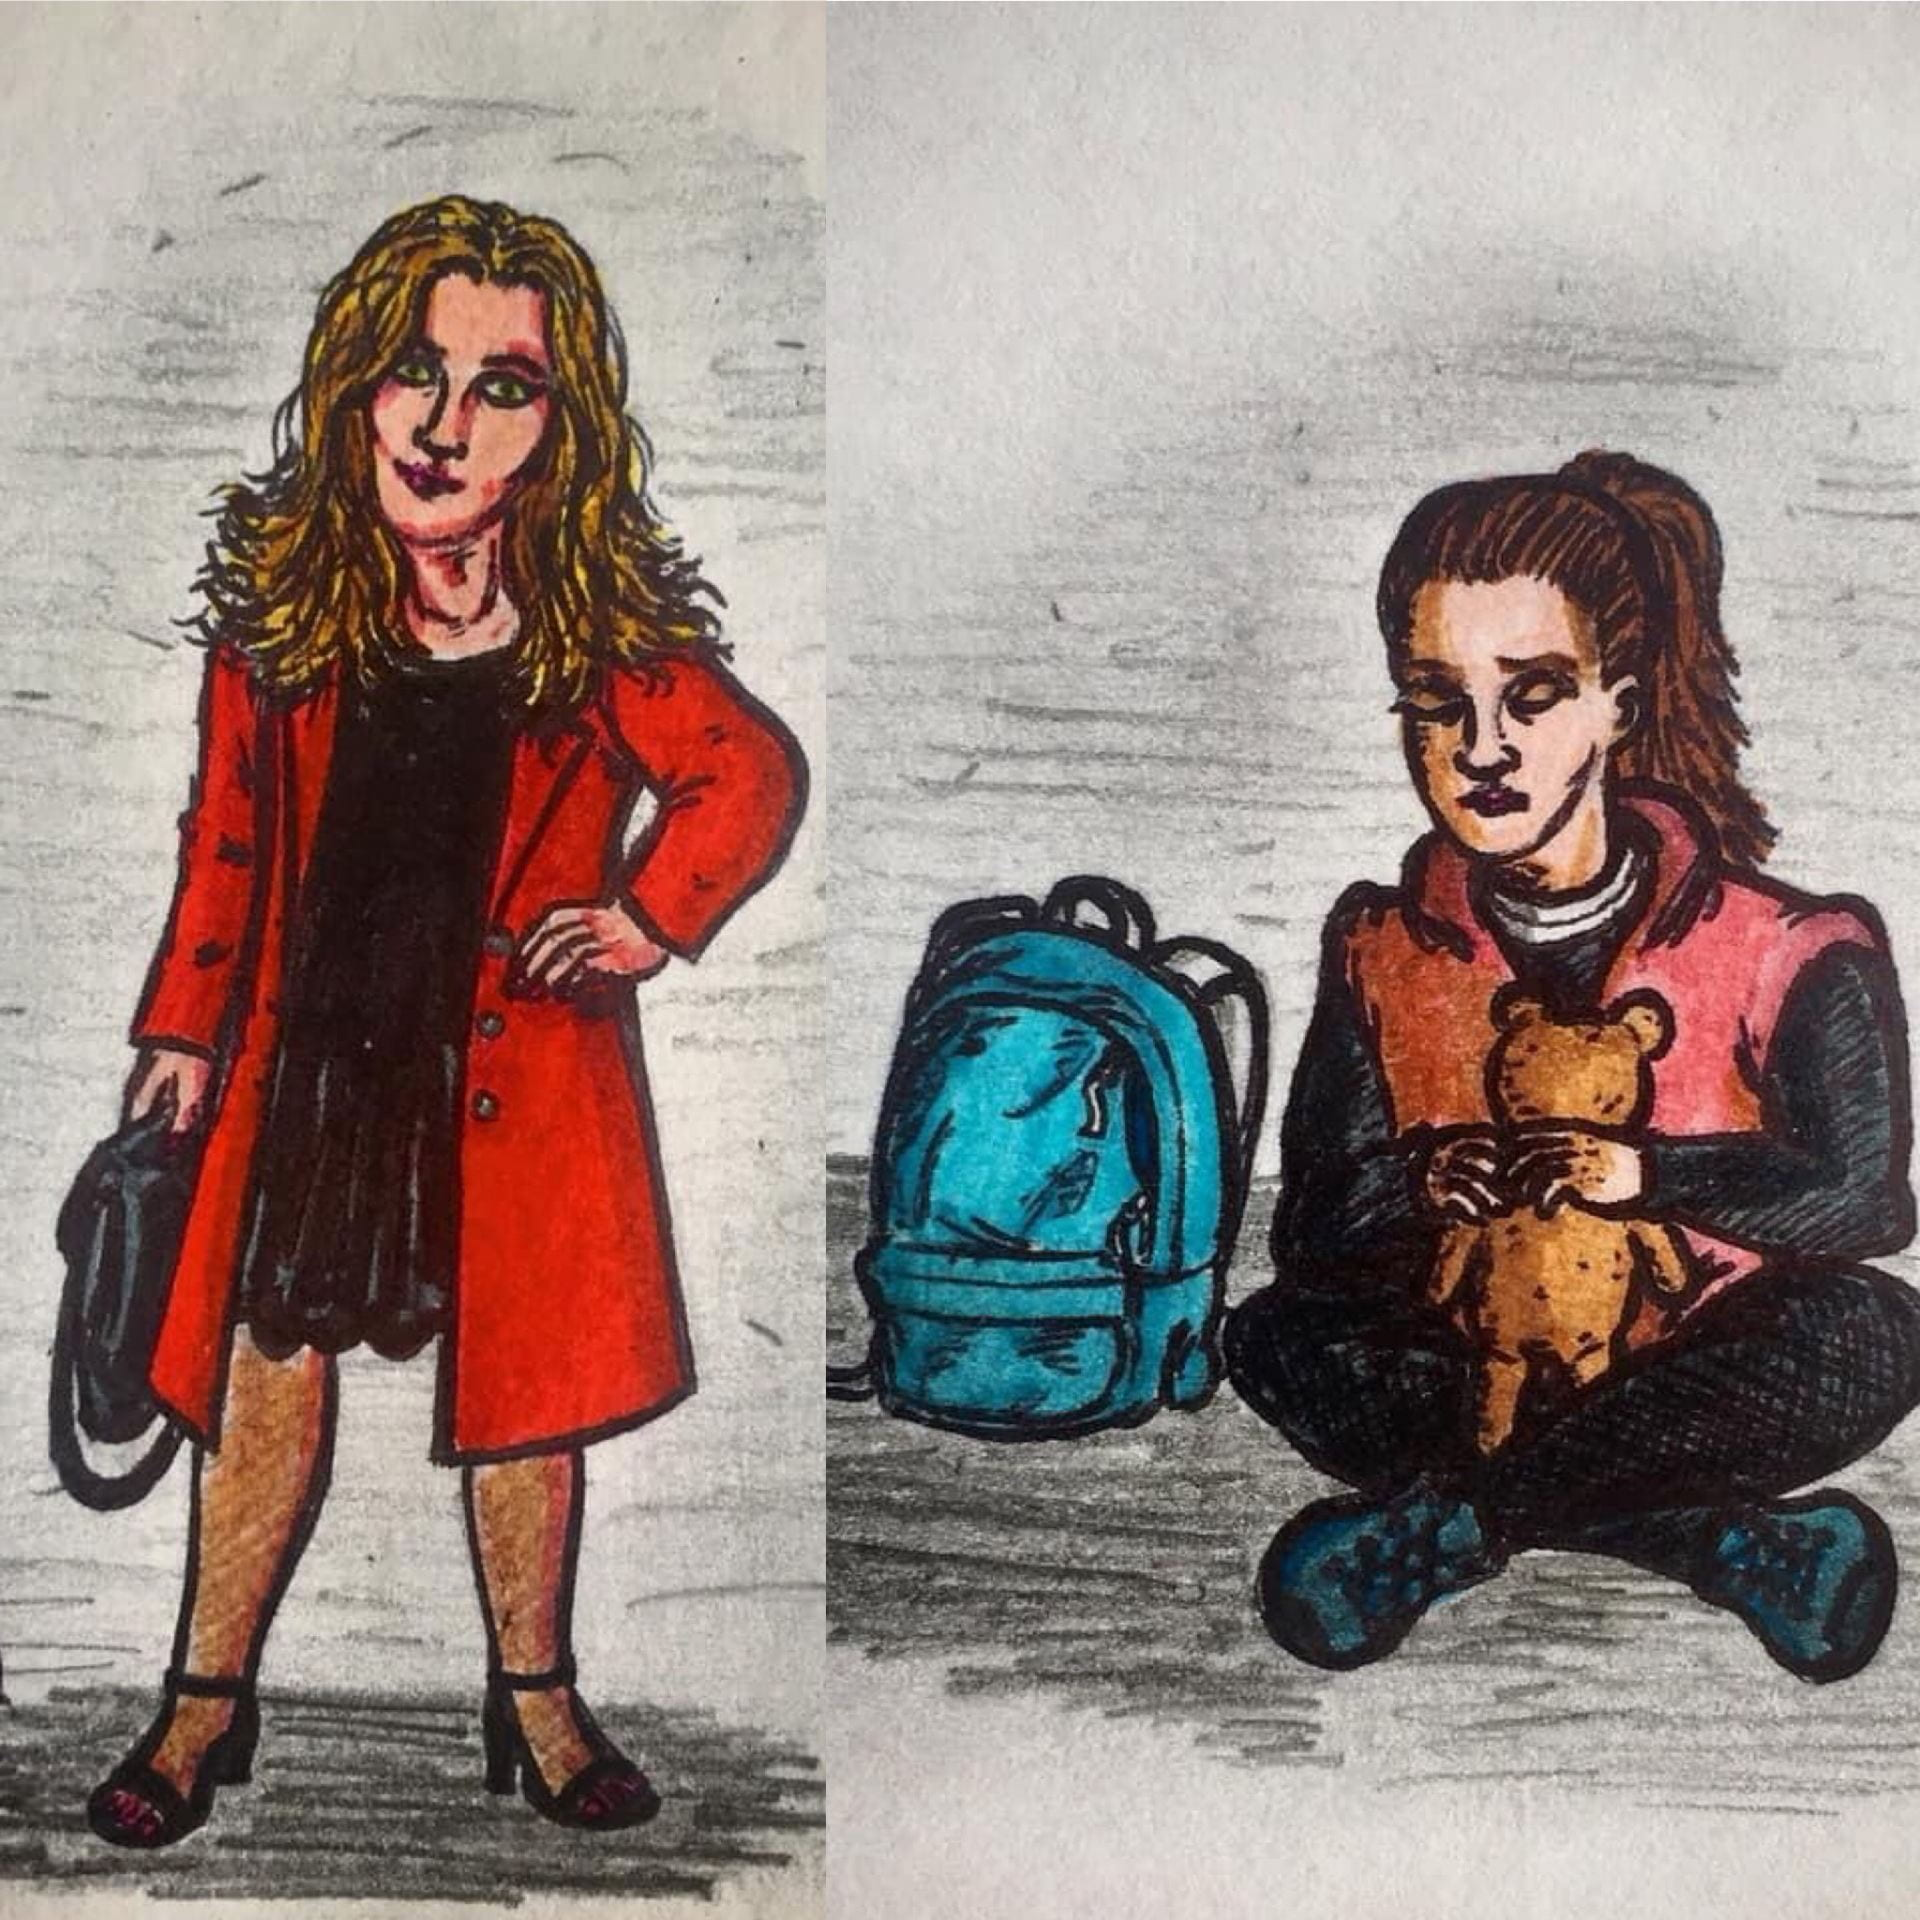 Drawings of characters; Sam & Leila. Created by James Bell.